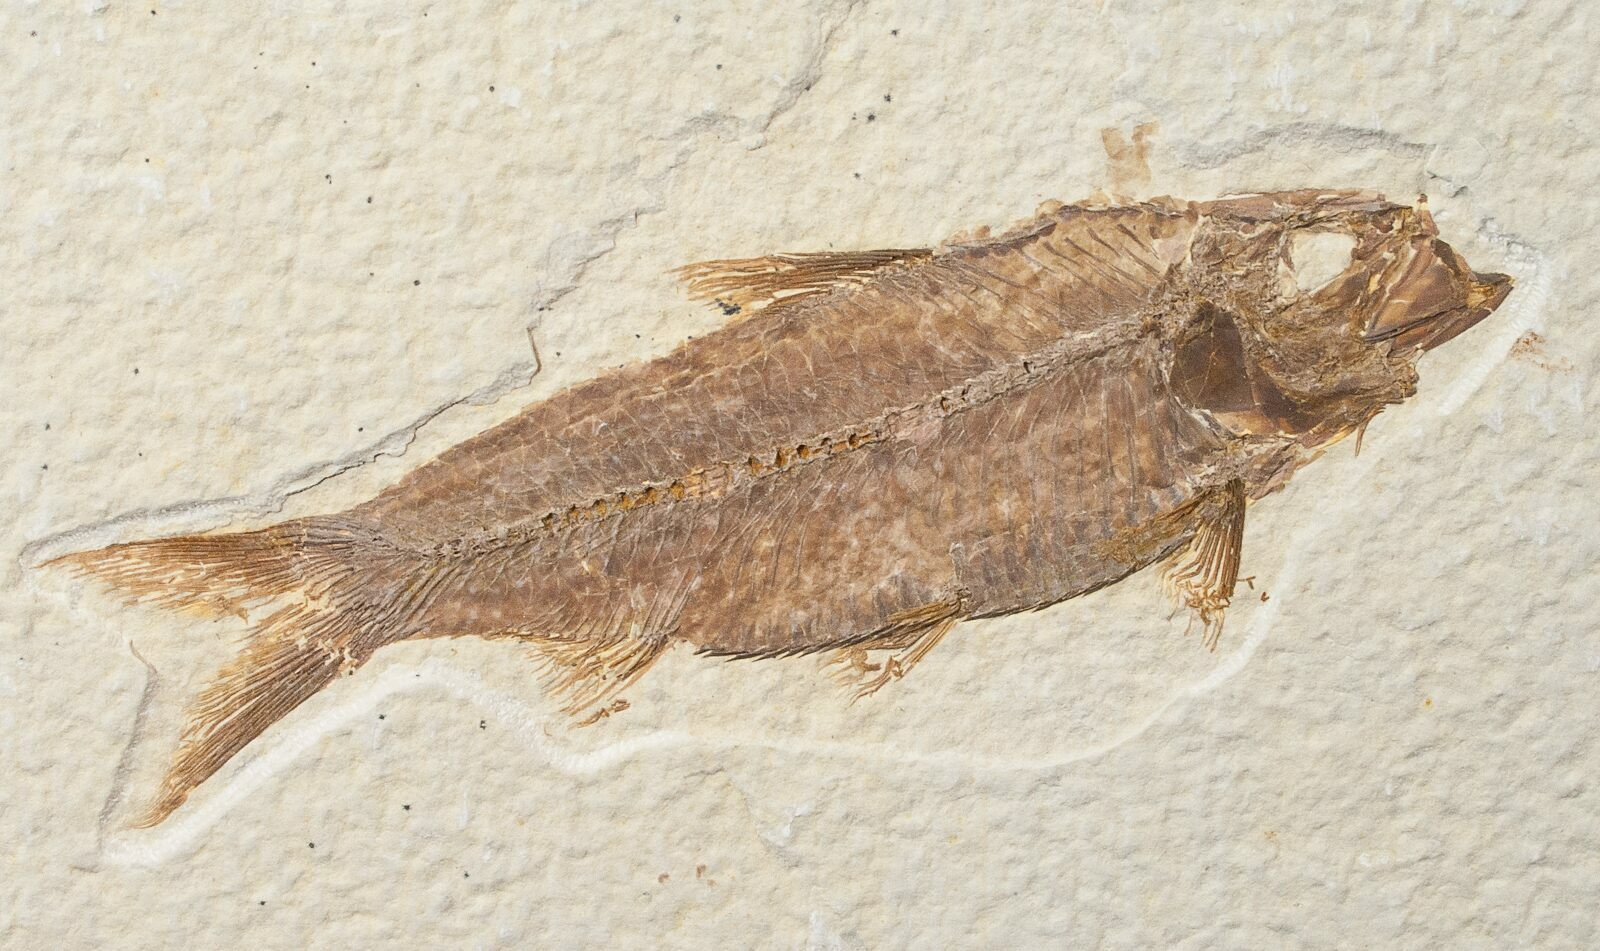 3 7 knightia fossil fish wyoming for sale 15972 for Fish fossils for sale